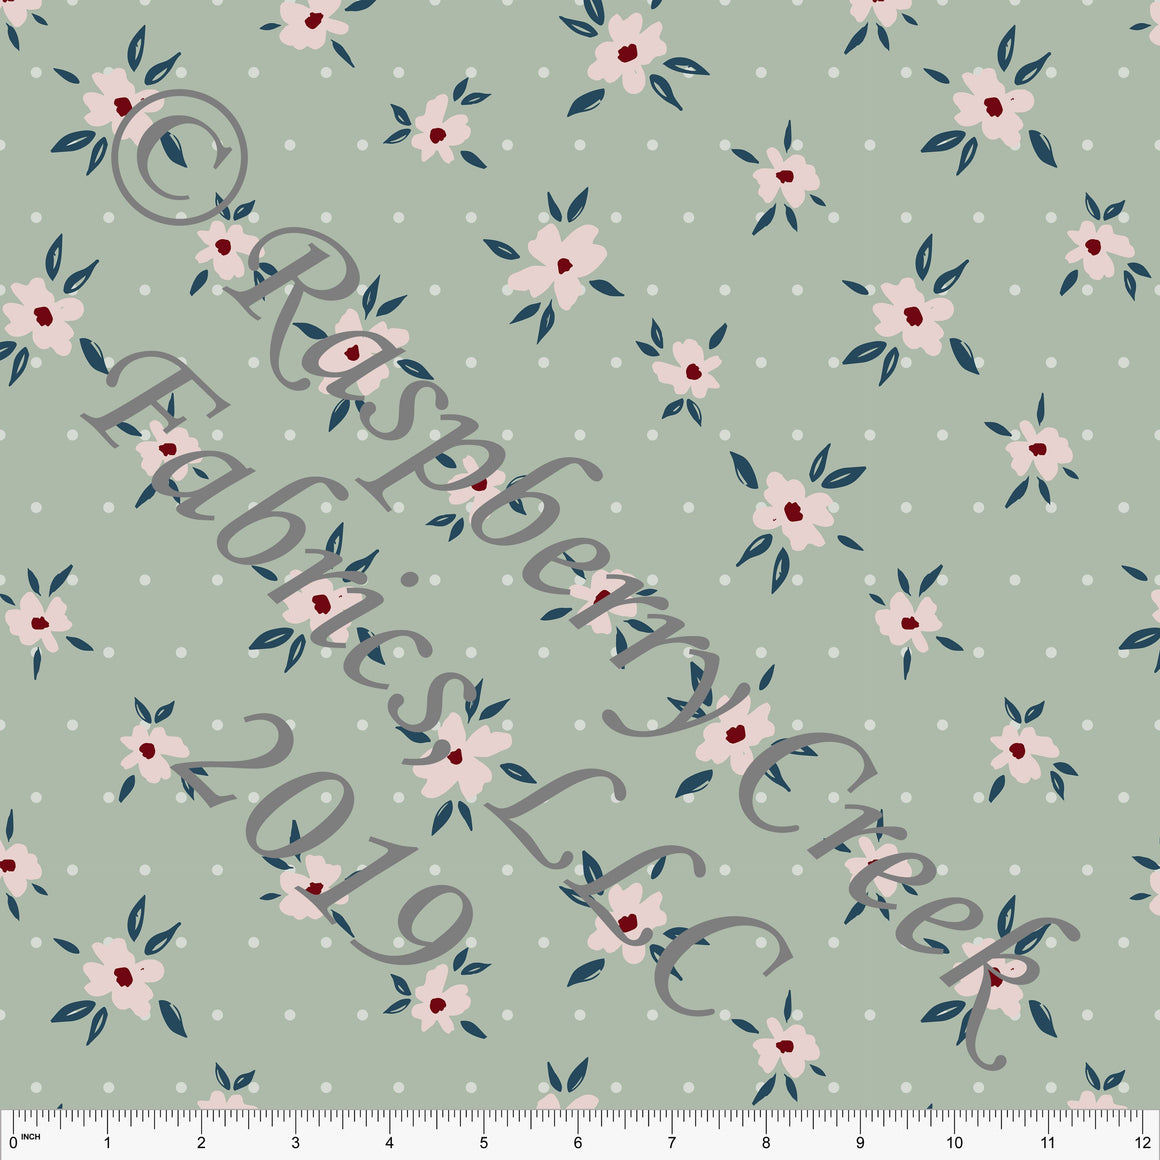 Sage Blush and Denim Blue Fleur Dot Floral By Kimberly Henrie for CLUB Fabrics - Raspberry Creek Fabrics